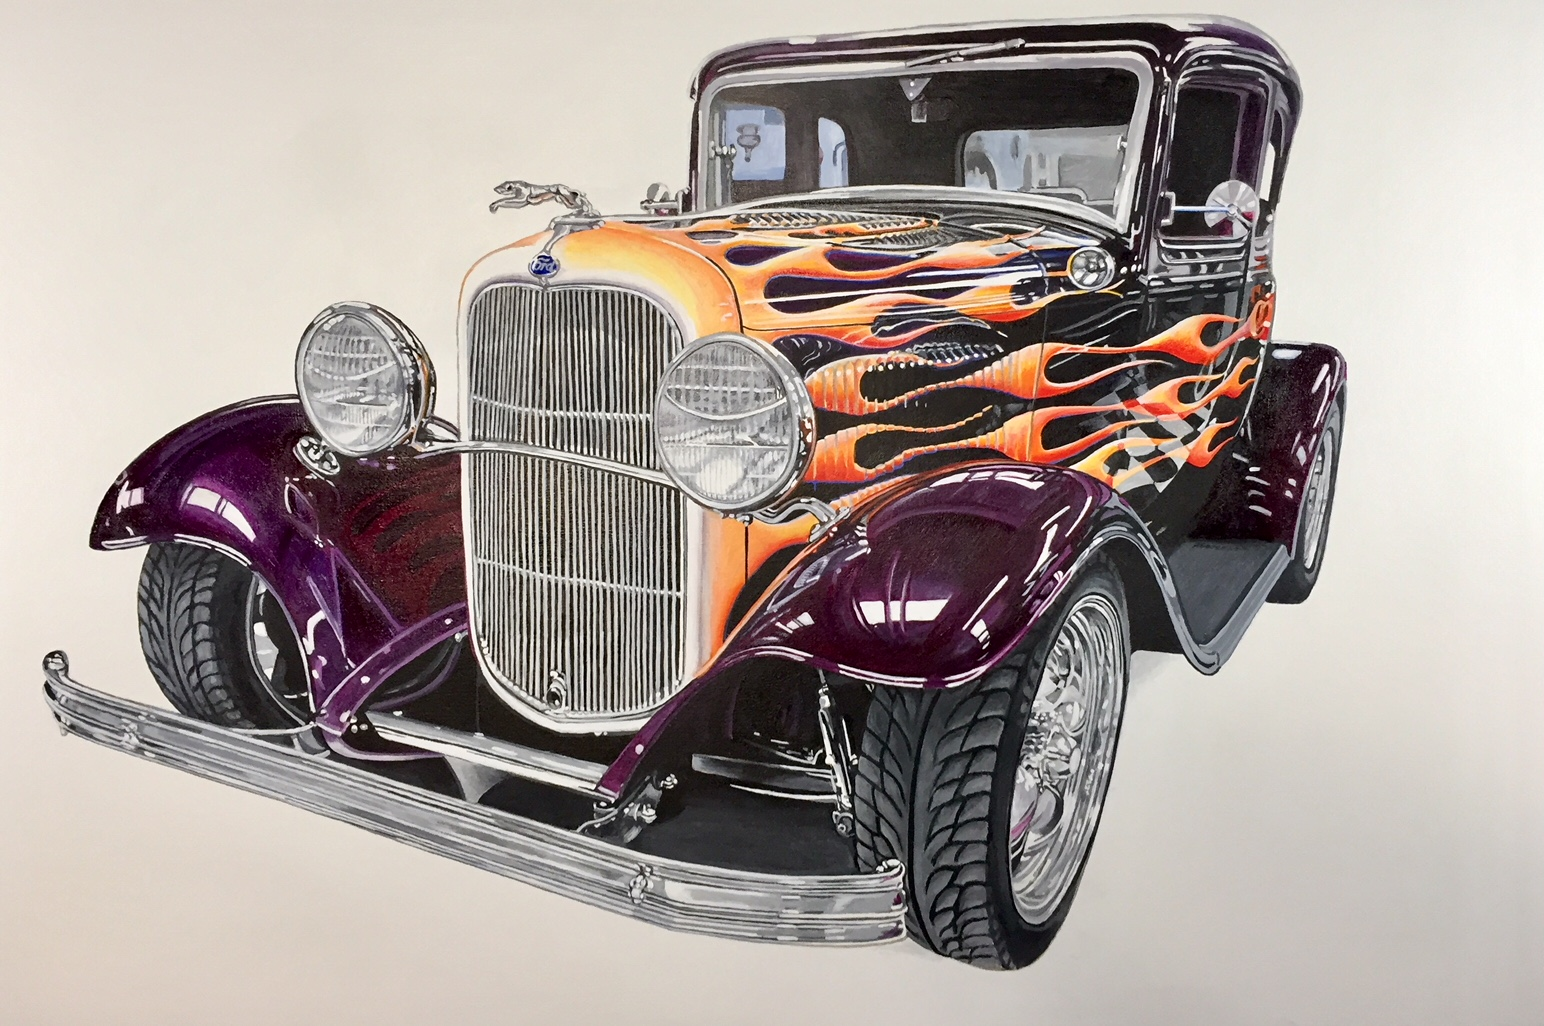 32 Ford Deuce Hot rod ,48x32 inches